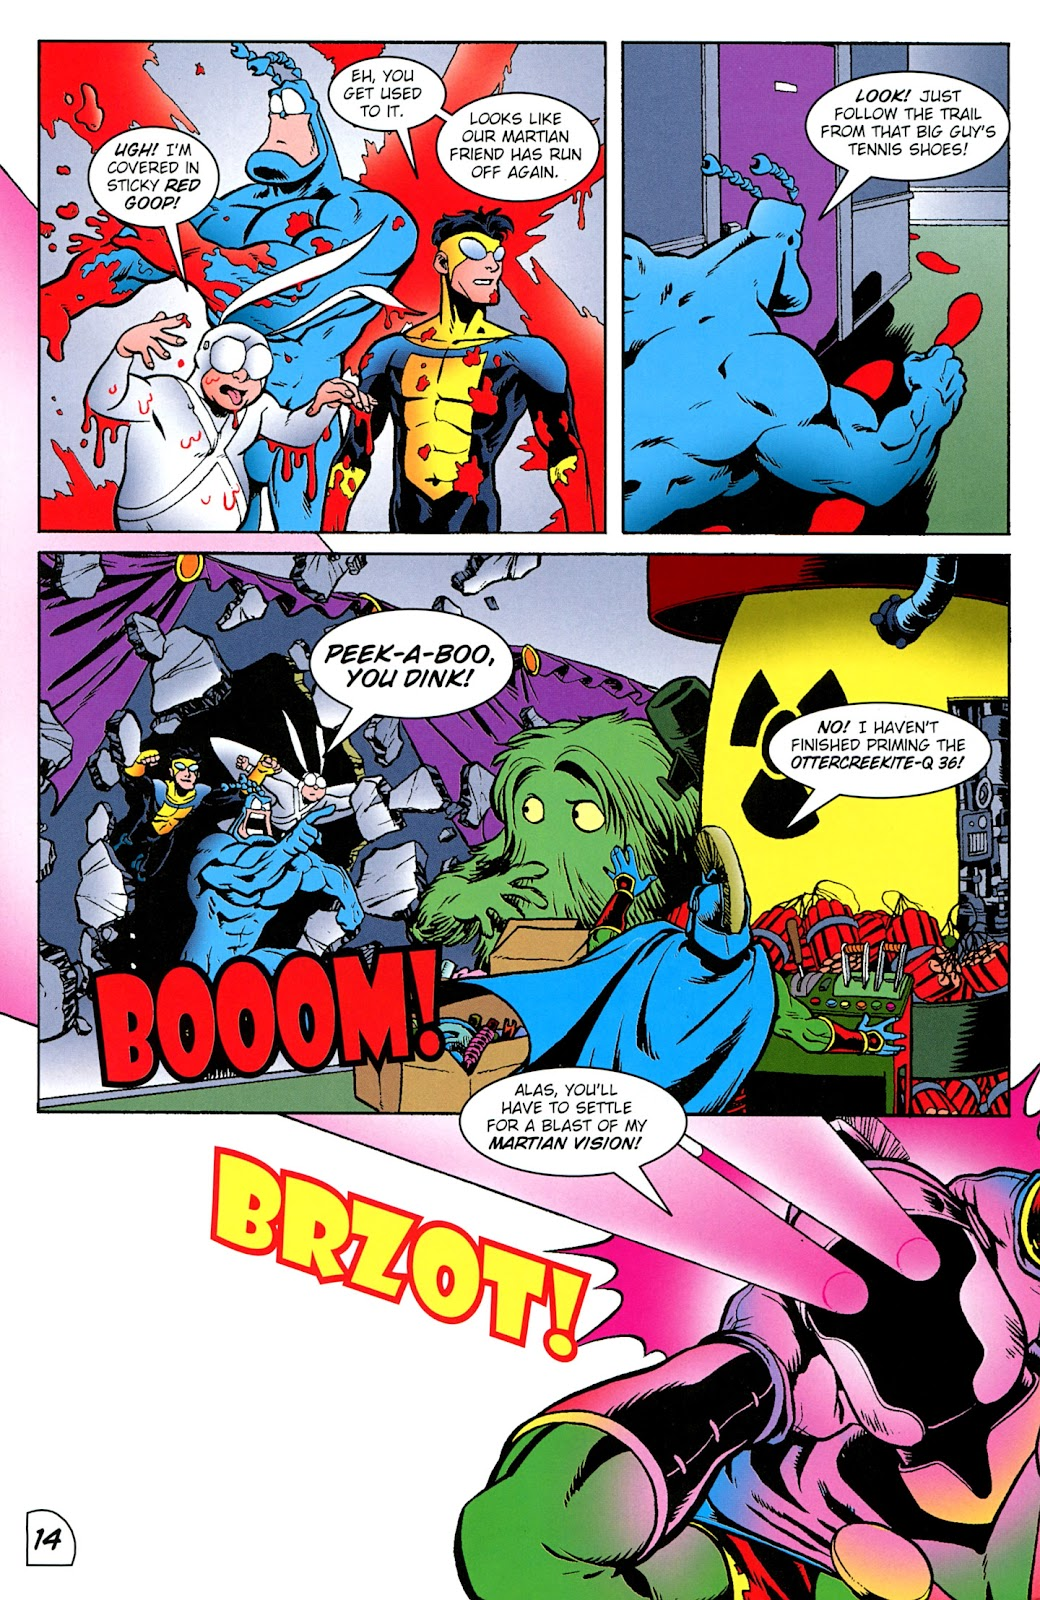 Read online The Tick comic -  Issue #100 - 15